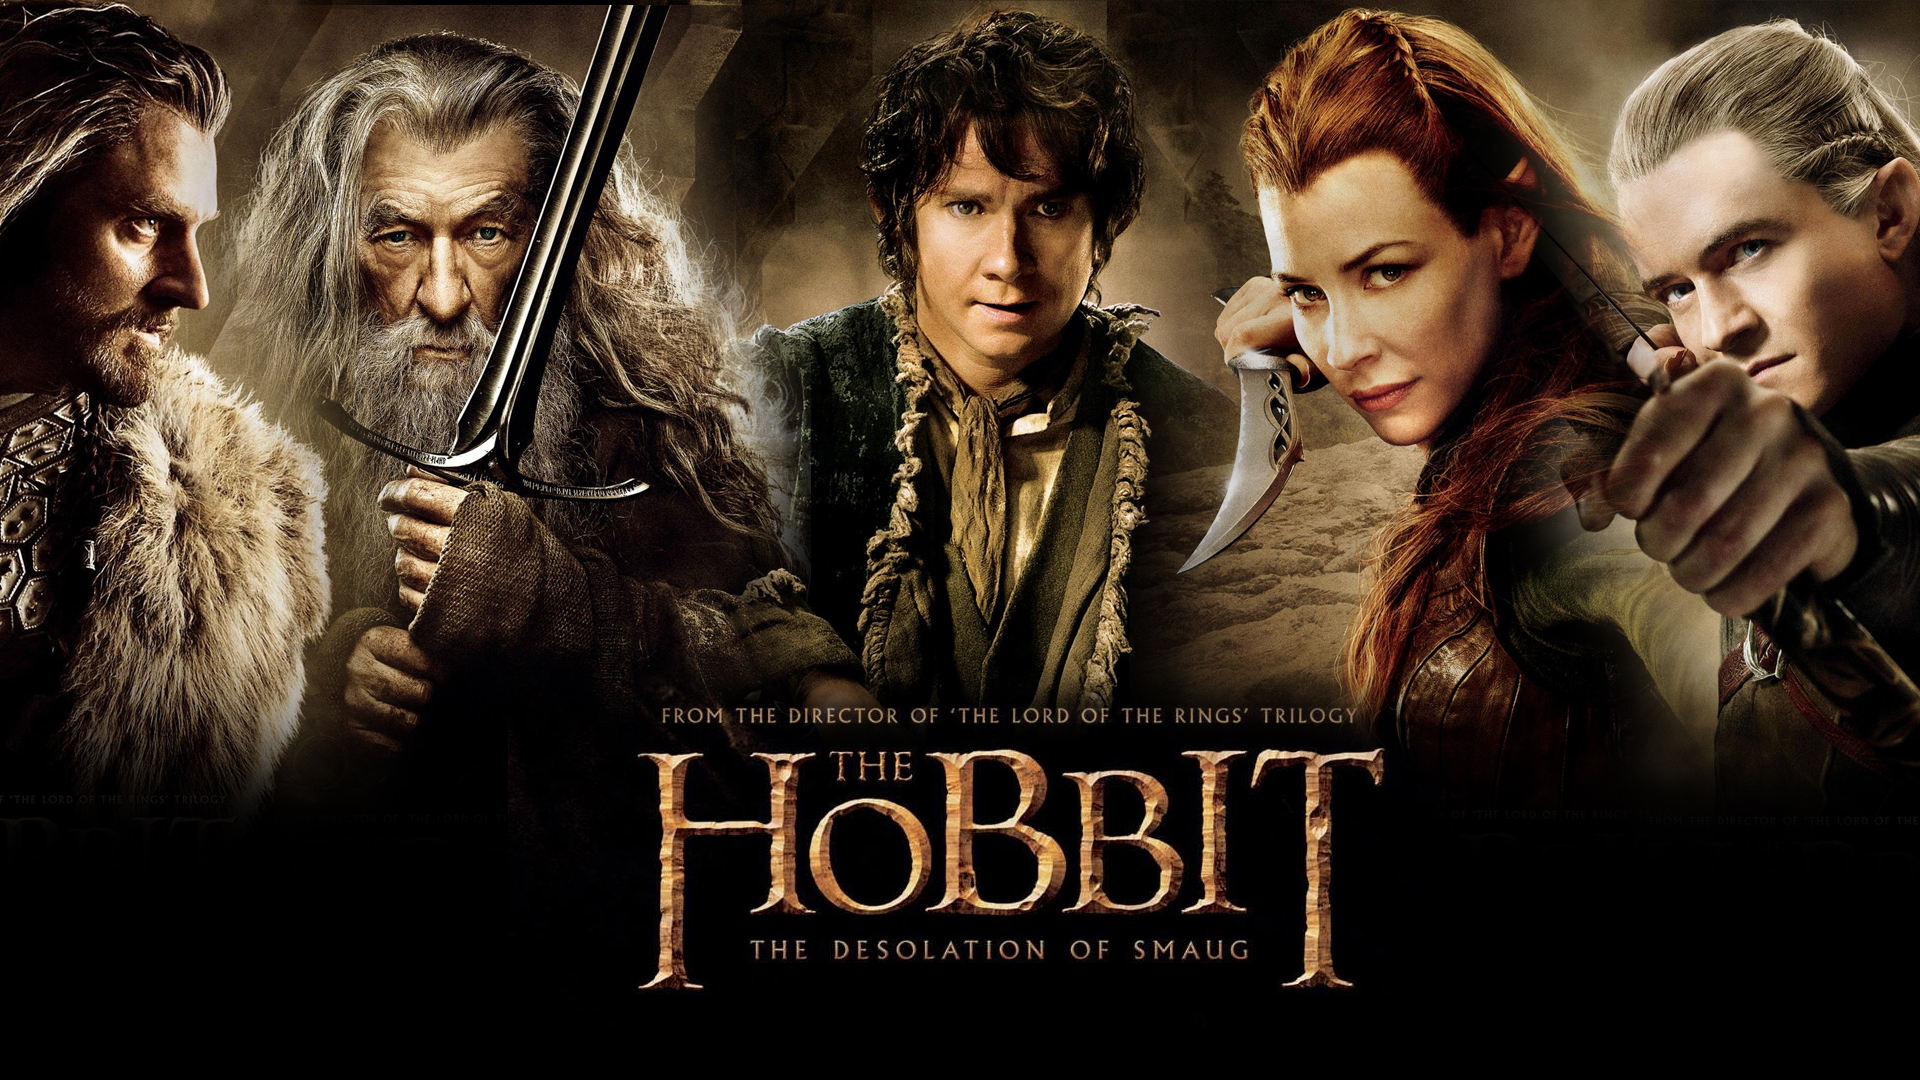 The Hobbit Desolation Of Smaug Review